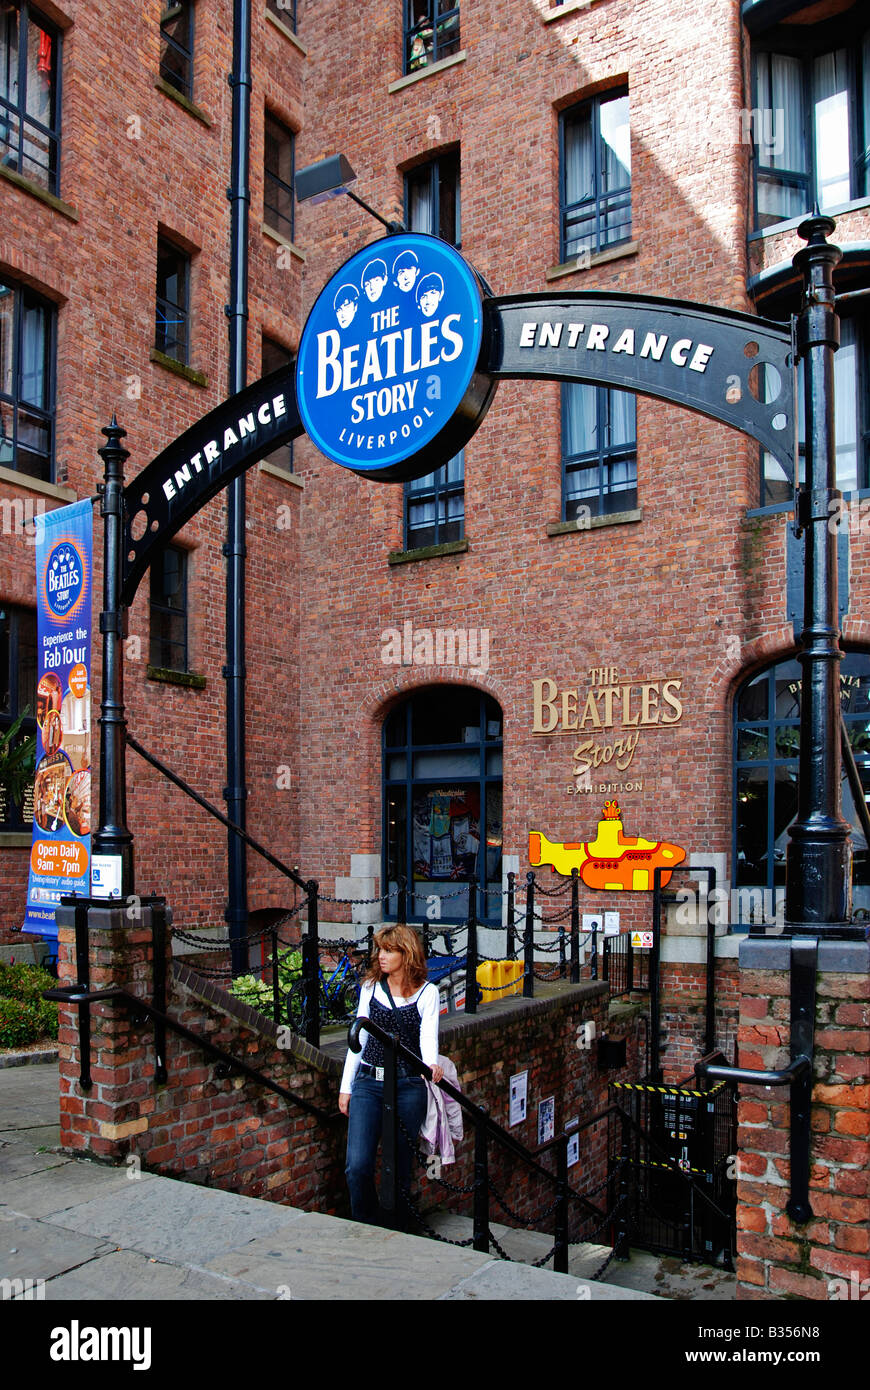 the 'beatles story' museum at the 'albert dock' in liverpool,england,uk - Stock Image